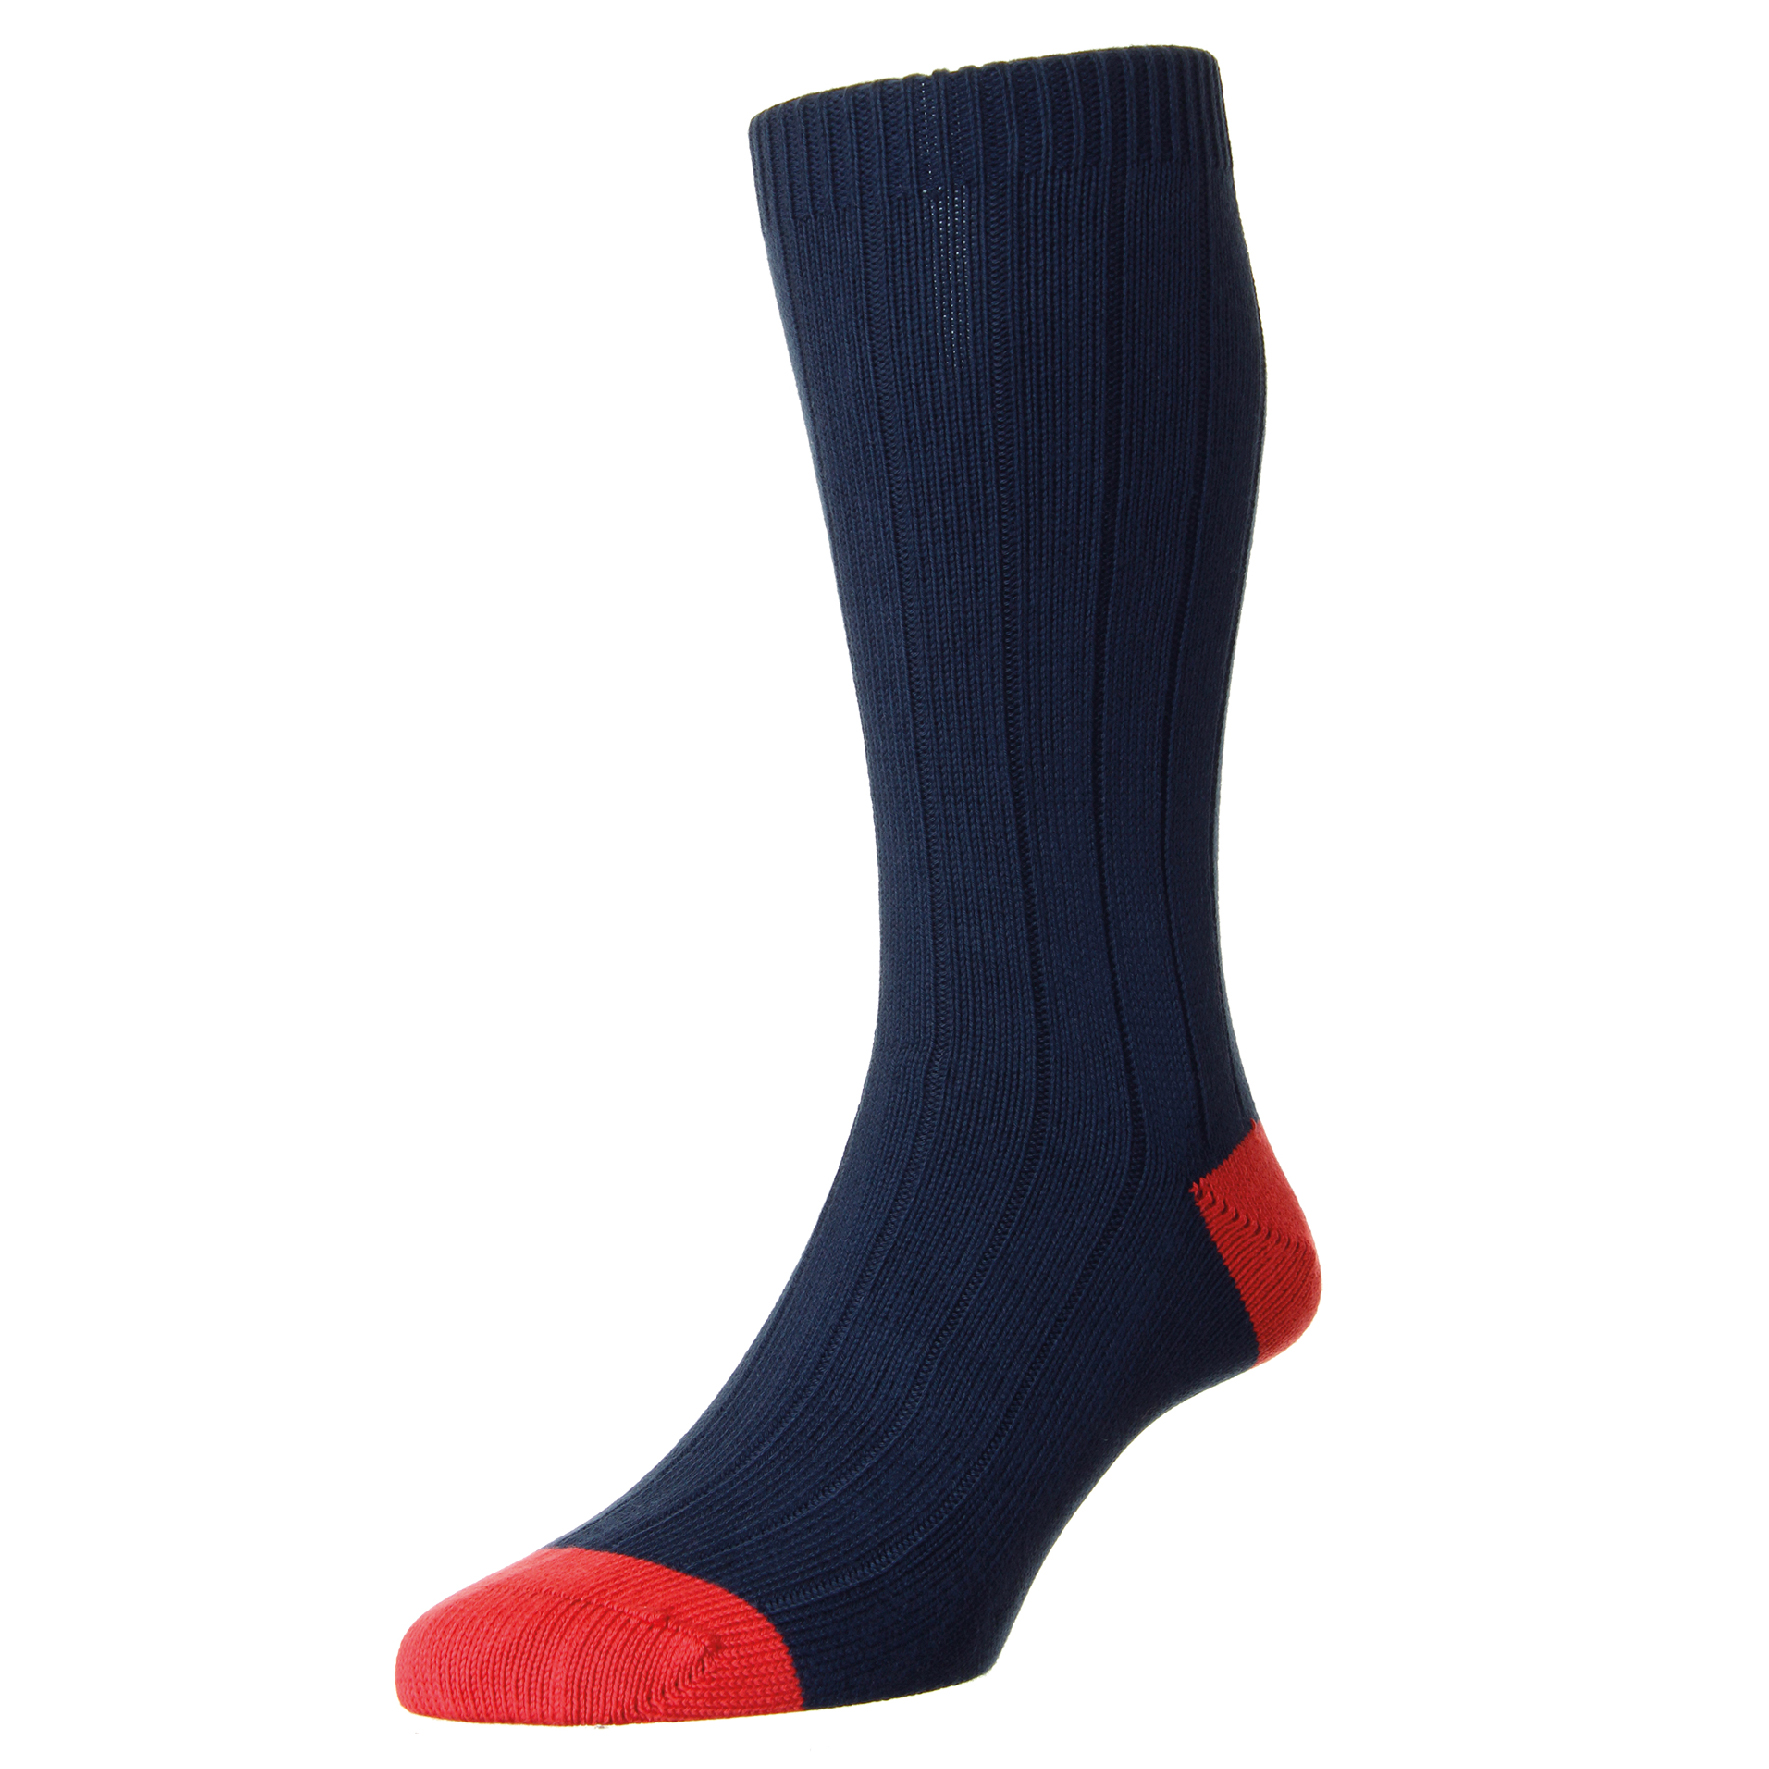 LAUNCHING OCTOBER 2016  RUG-NAV-PLN - Rugby Navy Chunky Cotton Sock  RRP £TBC  SIZES: Medium (6 - 9 UK), Large (9.5 - 12 UK)  OUT OF STOCK